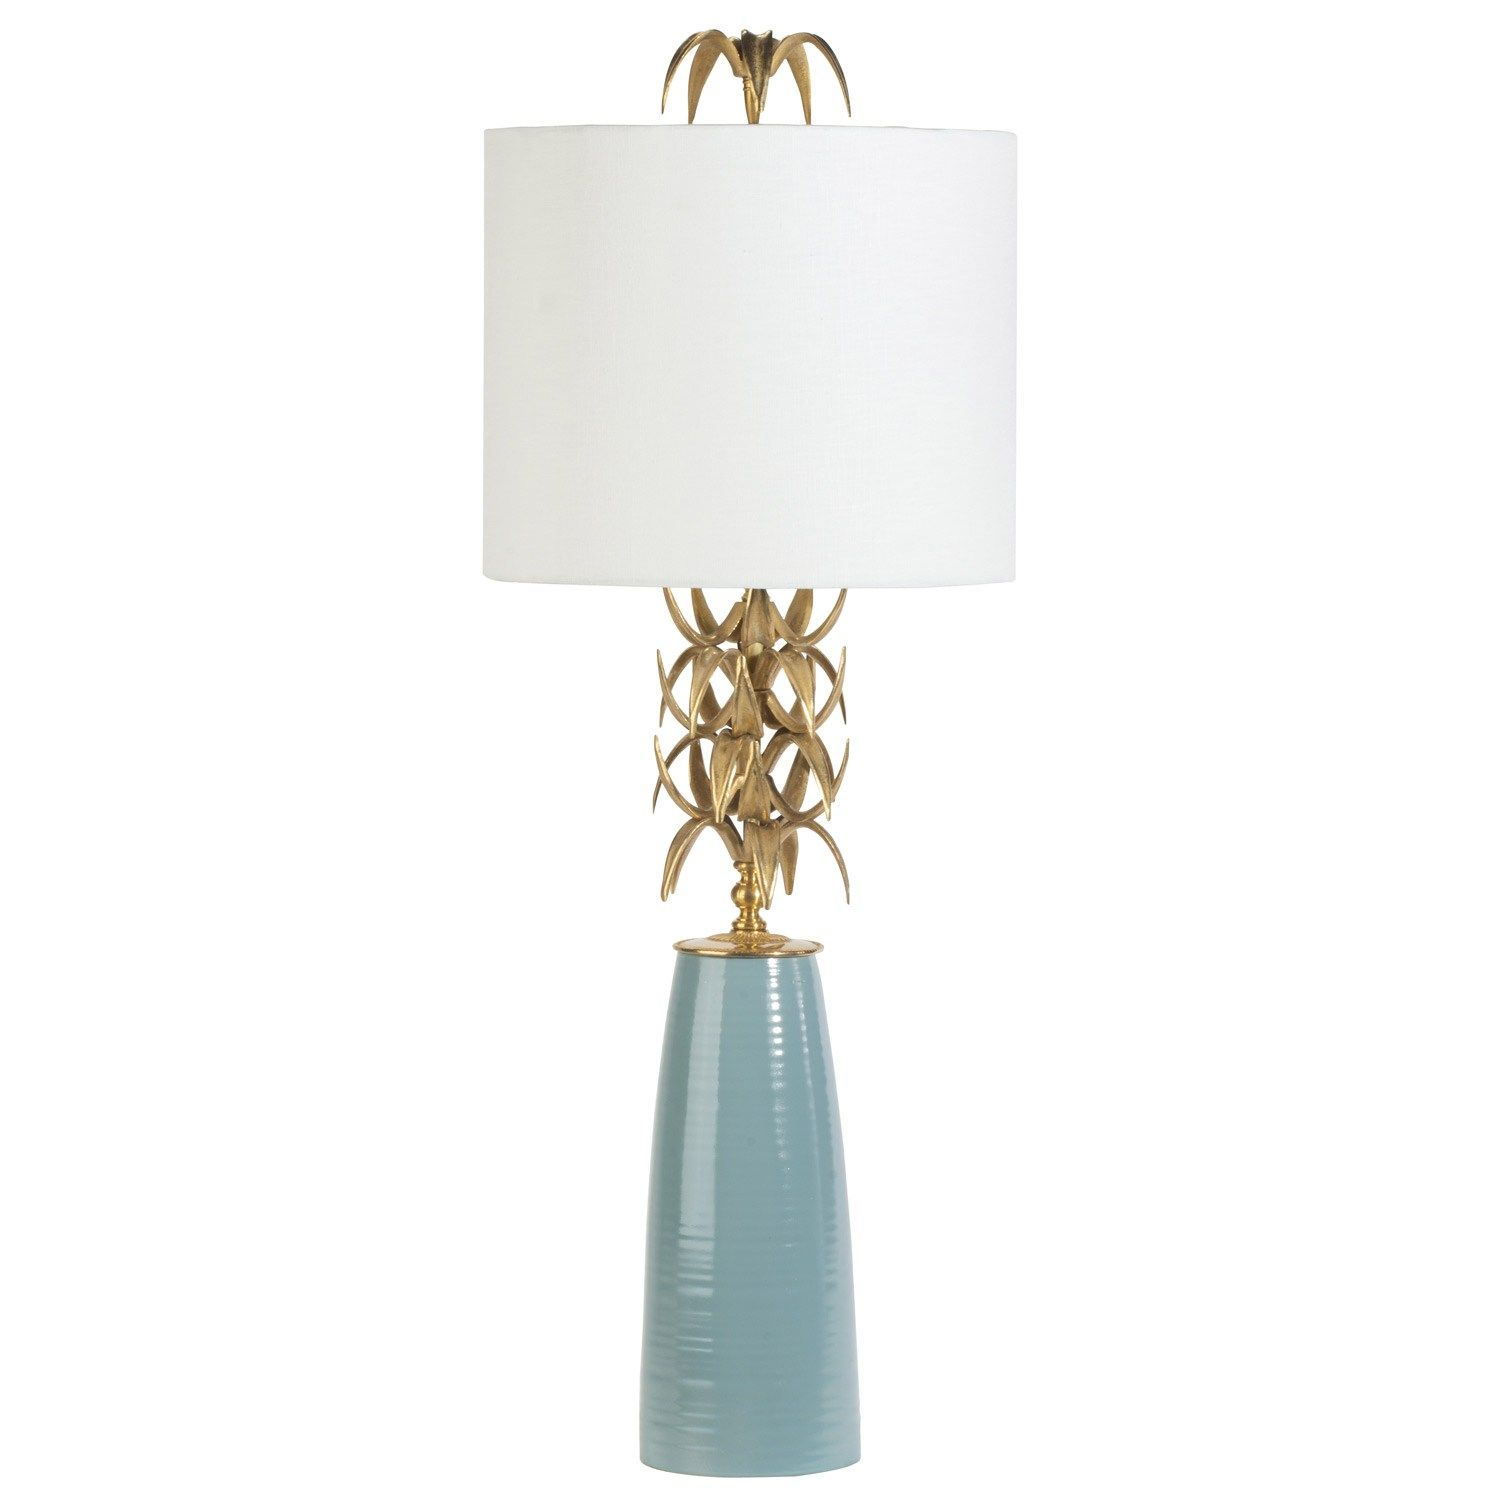 Eclectic details deliver the turquoise ananas table lamp glamorous eclectic details deliver the turquoise ananas table lamp glamorous distinction topped with a clean white aloadofball Gallery